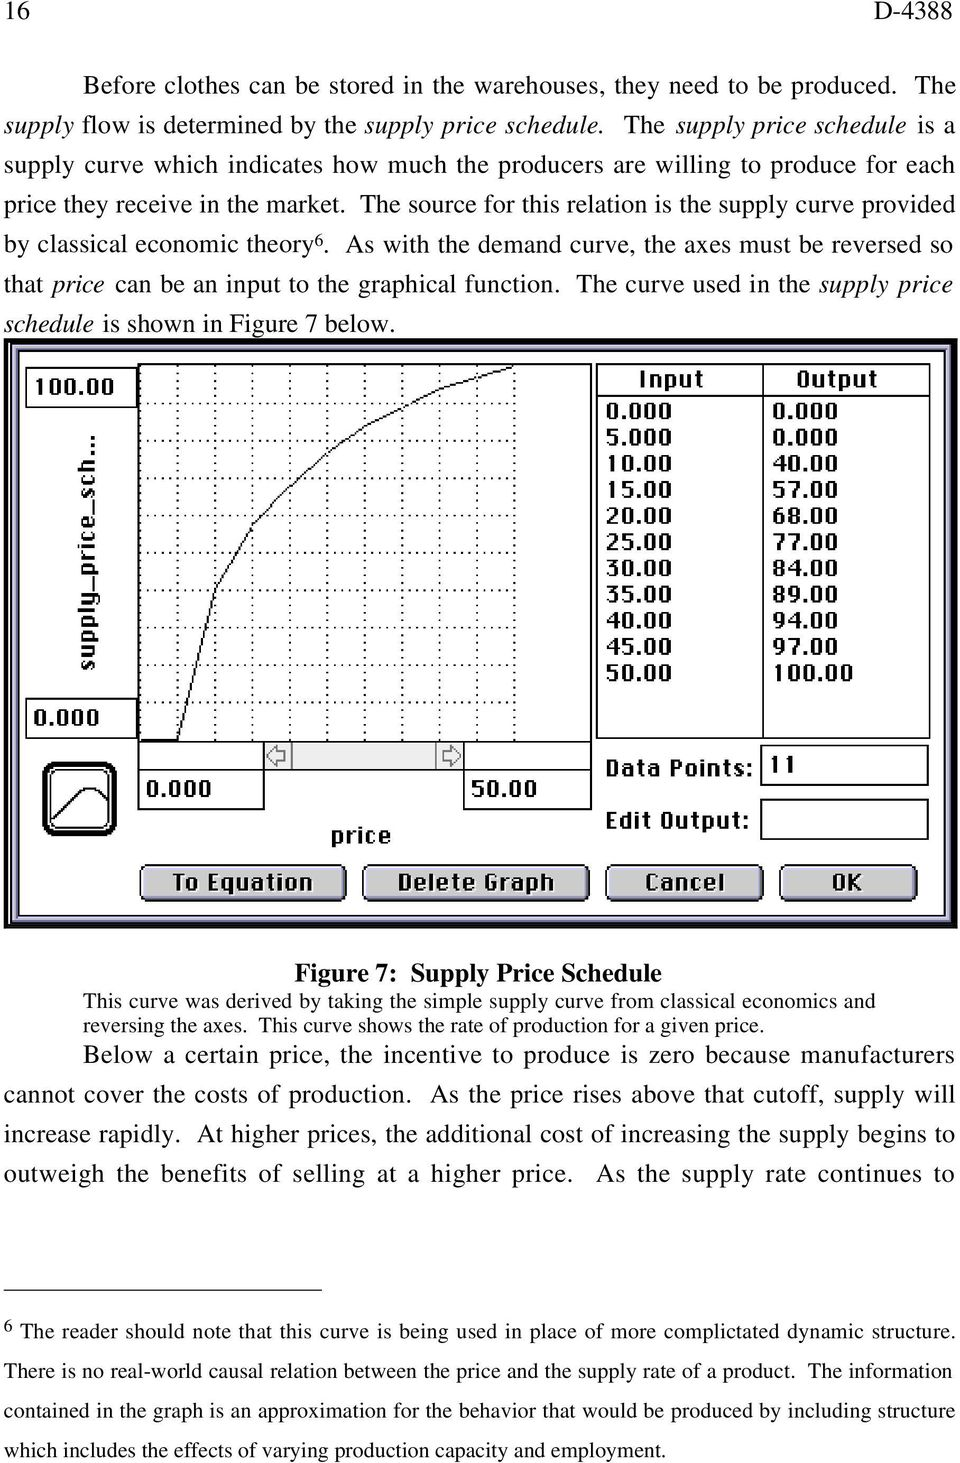 The source for this relation is the supply curve provided by classical economic theory 6. As with the demand curve, the axes must be reversed so that price can be an input to the graphical function.